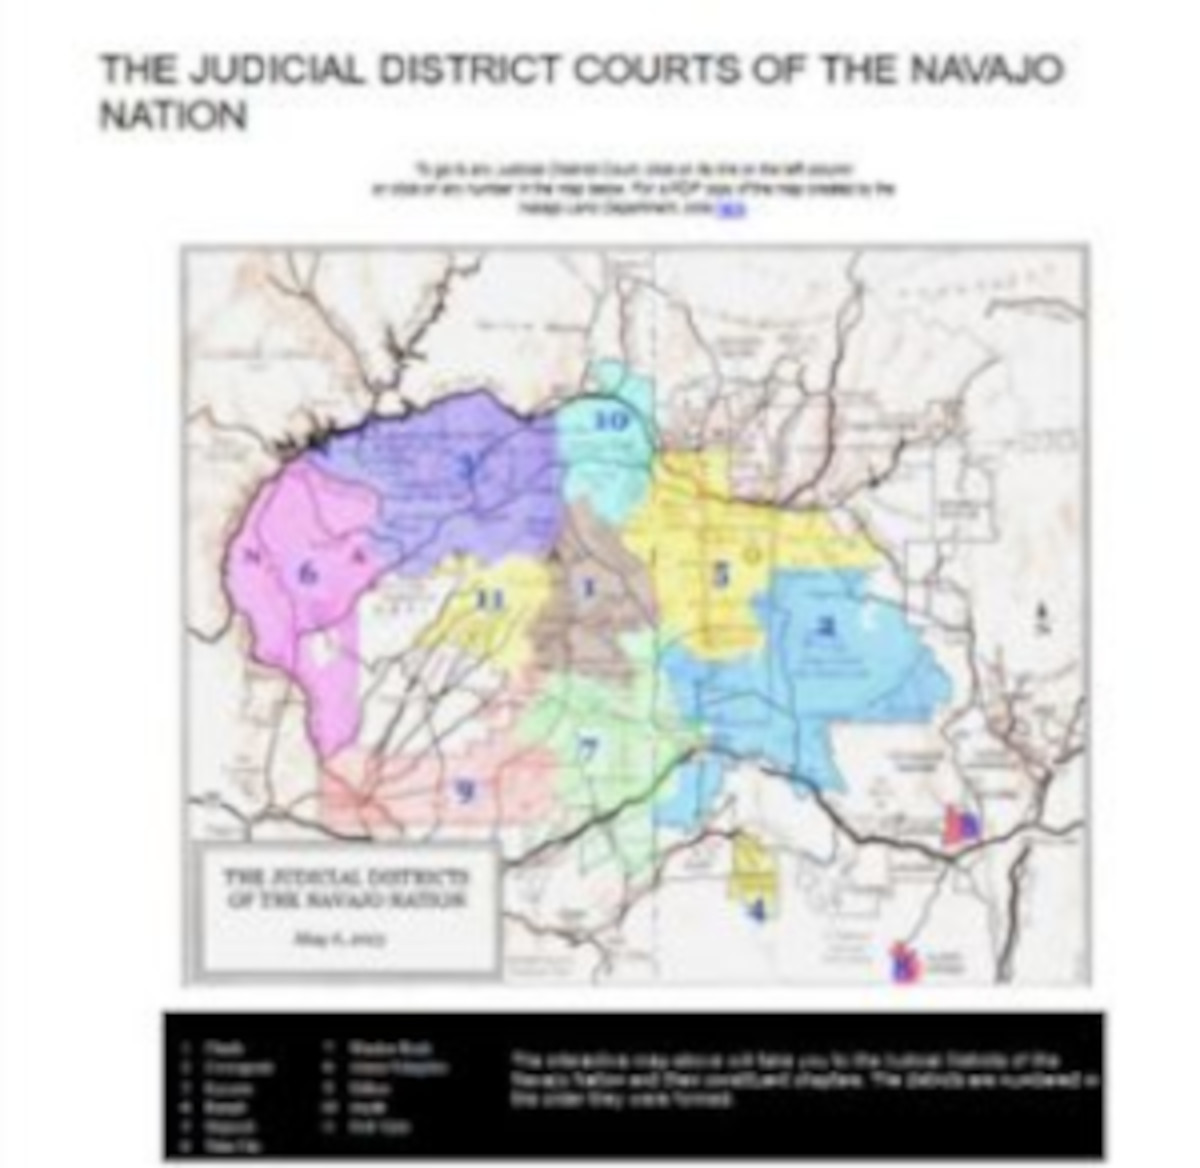 Screenshot of the map of the Navajo judicial district courts.